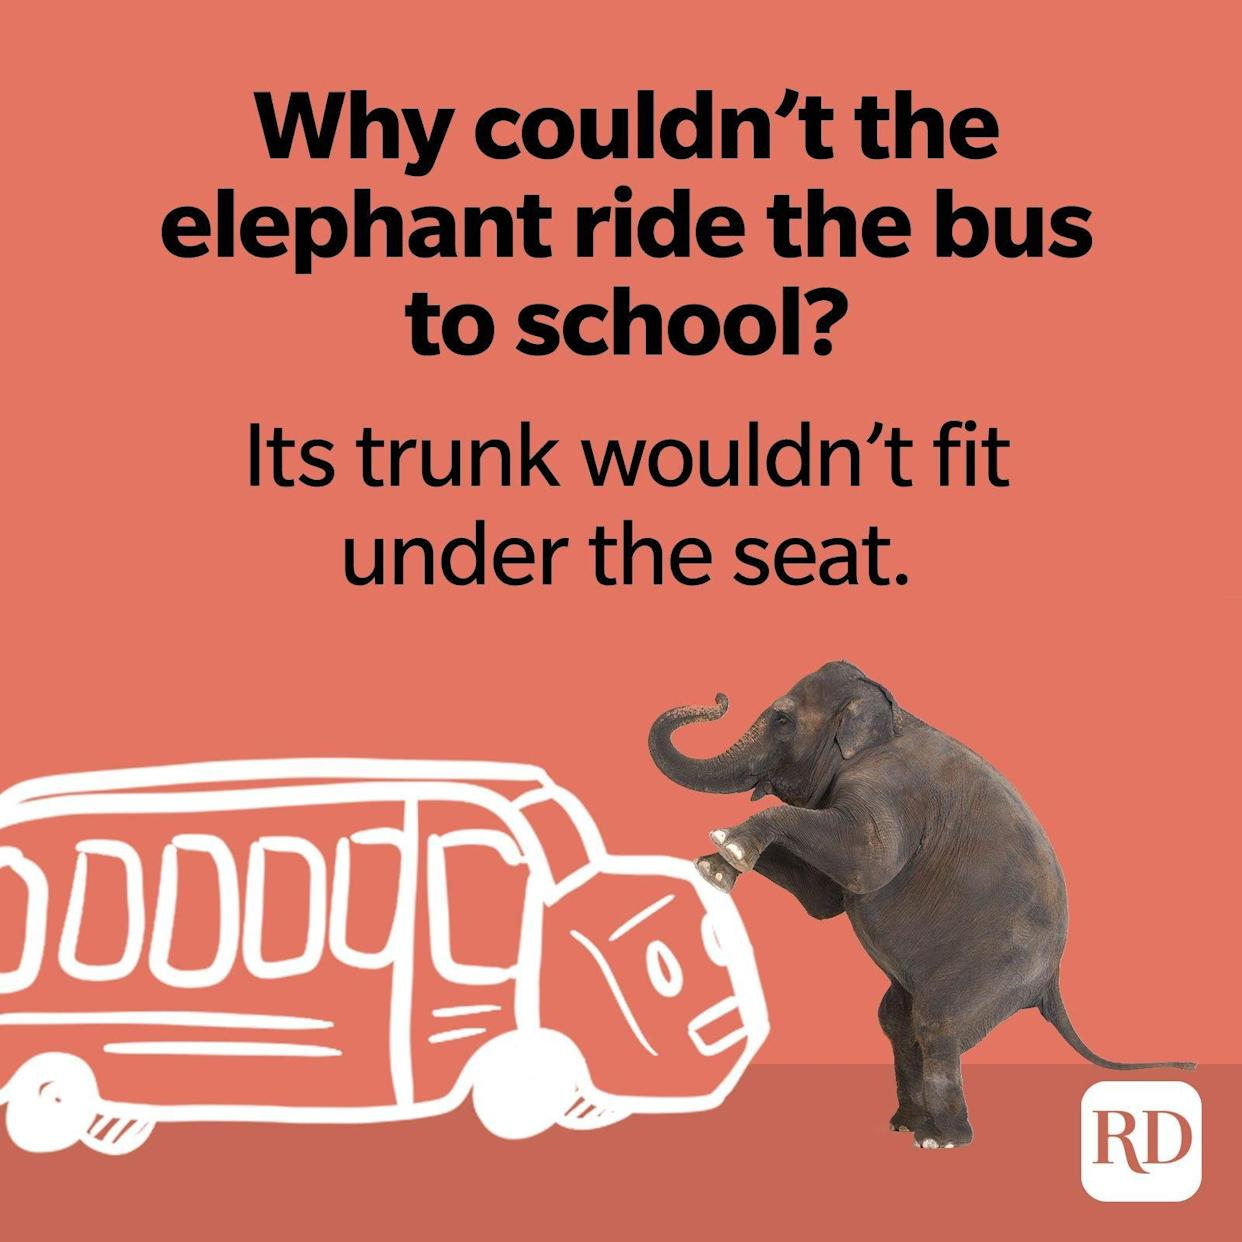 16. Why couldn't the elephant ride the bus to school? Its trunk wouldn't fit under the seat.